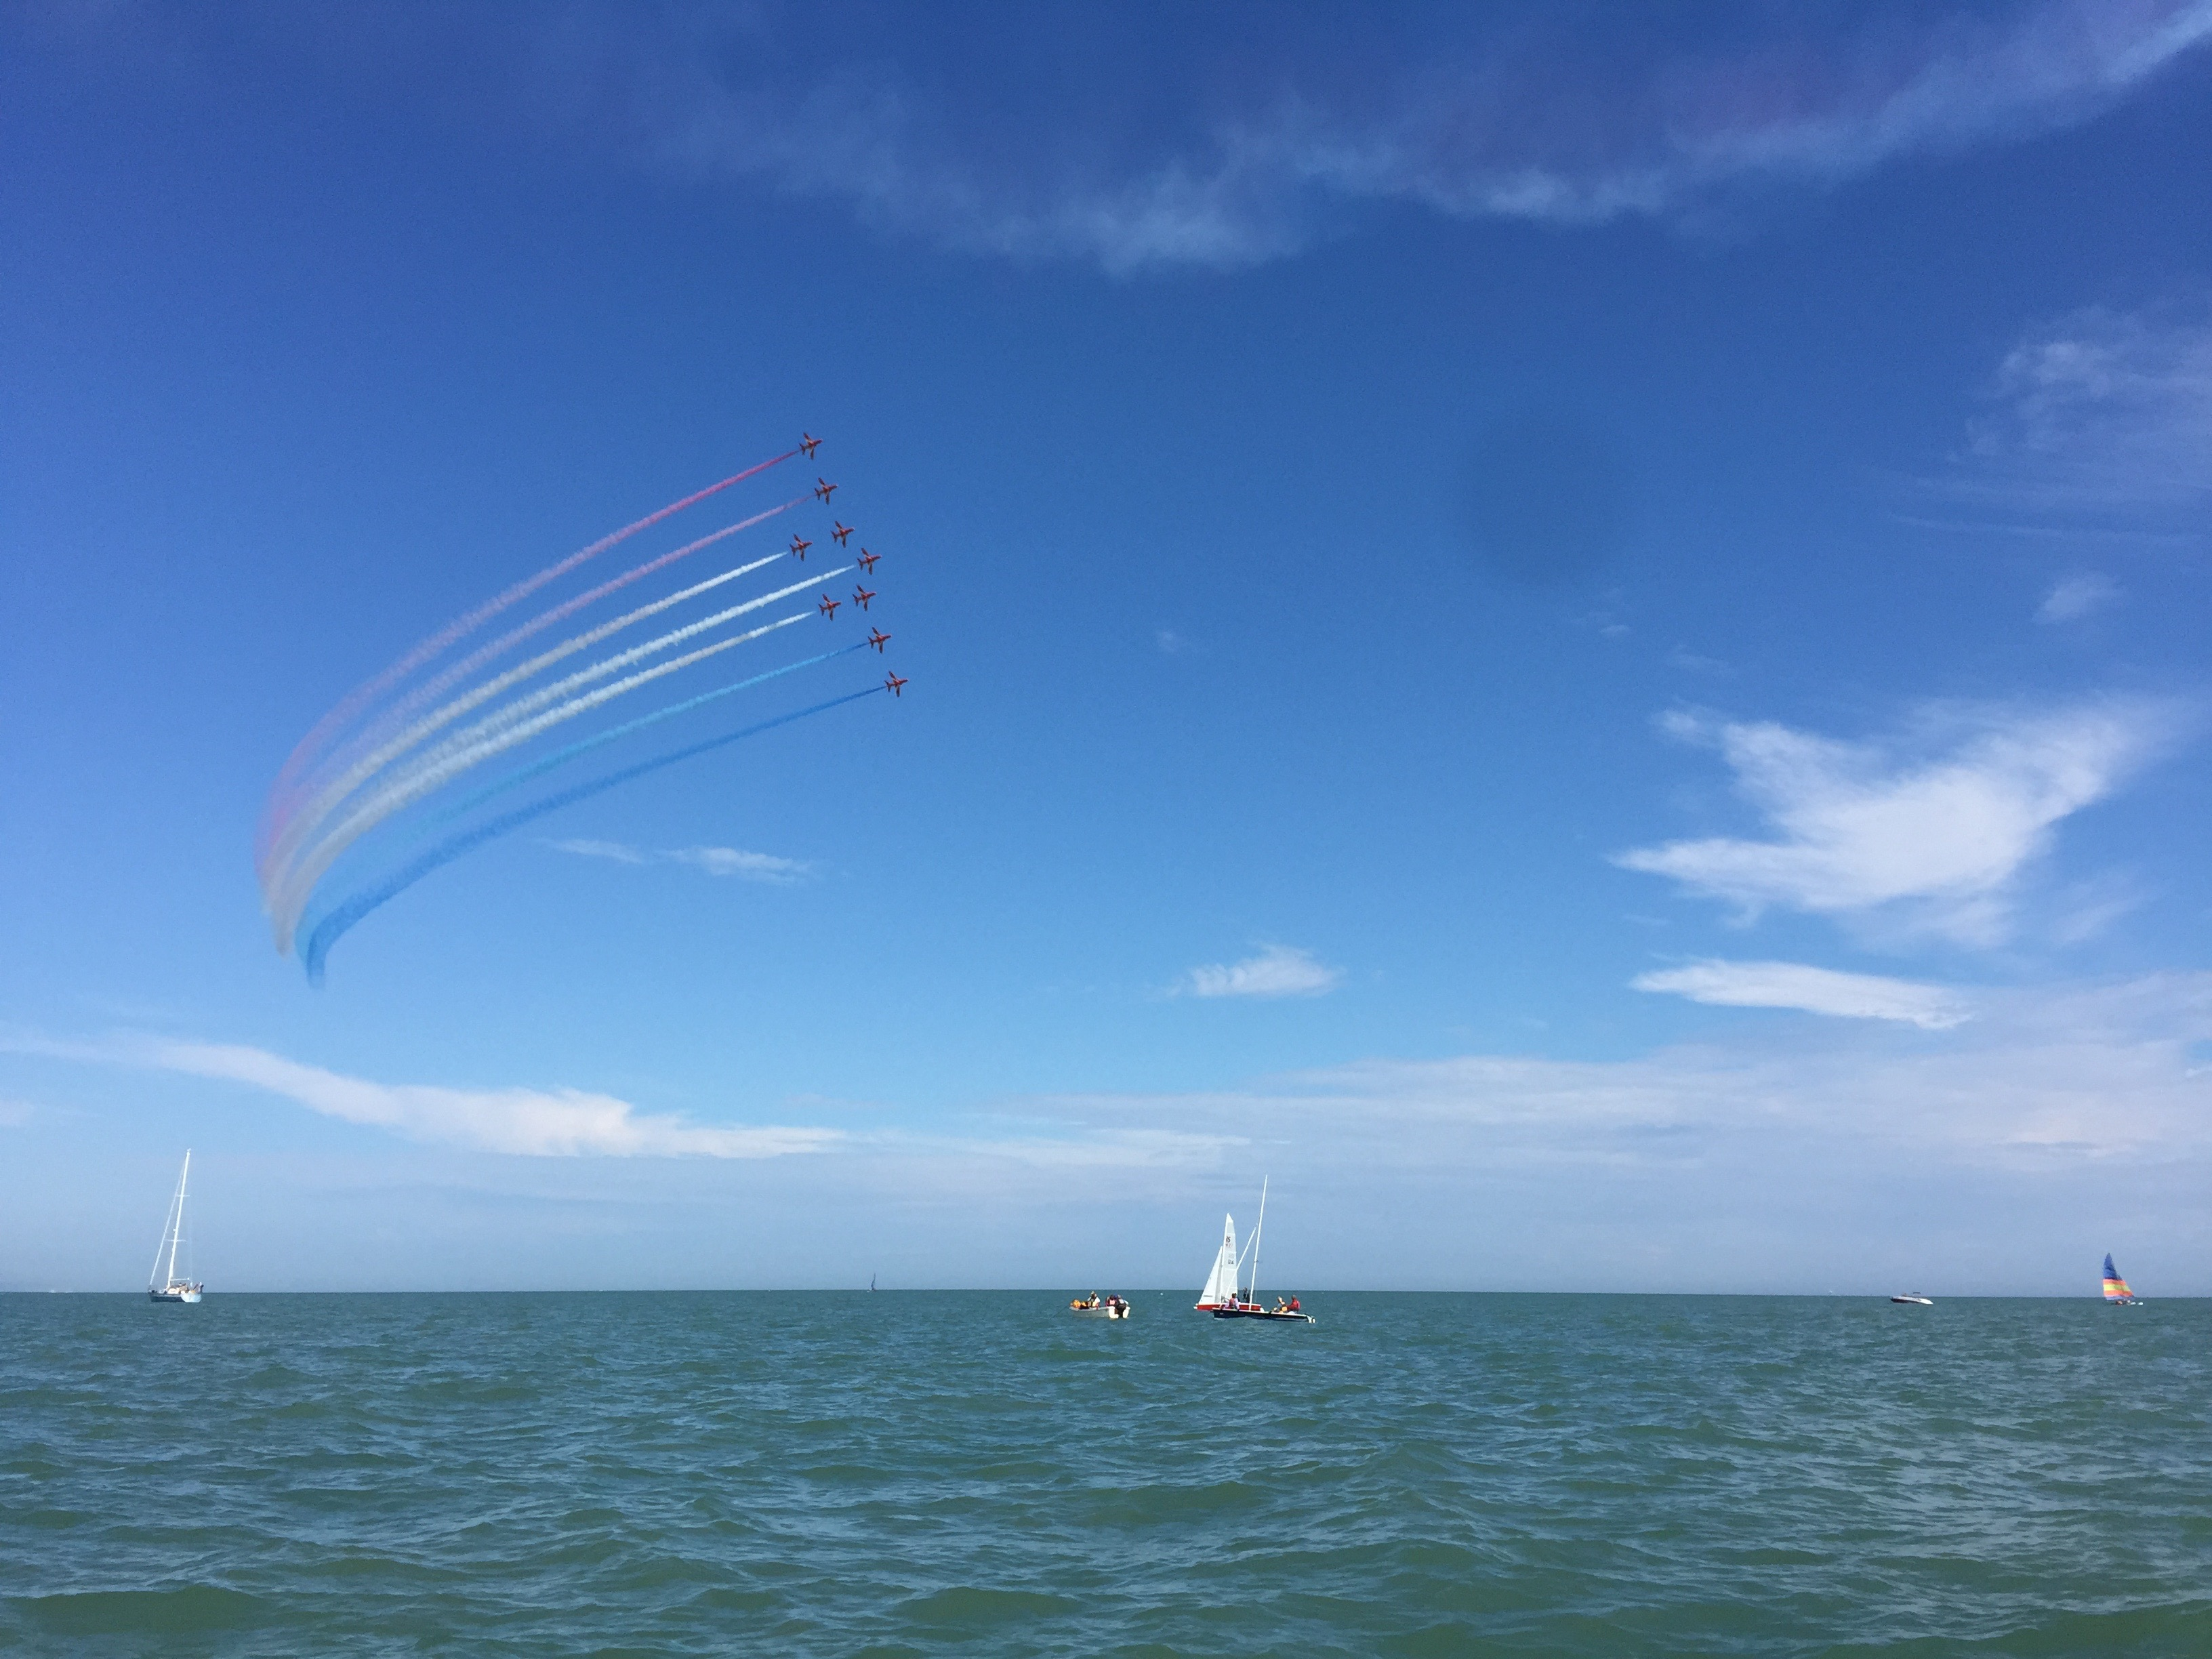 Airborne eastbourne boat rides